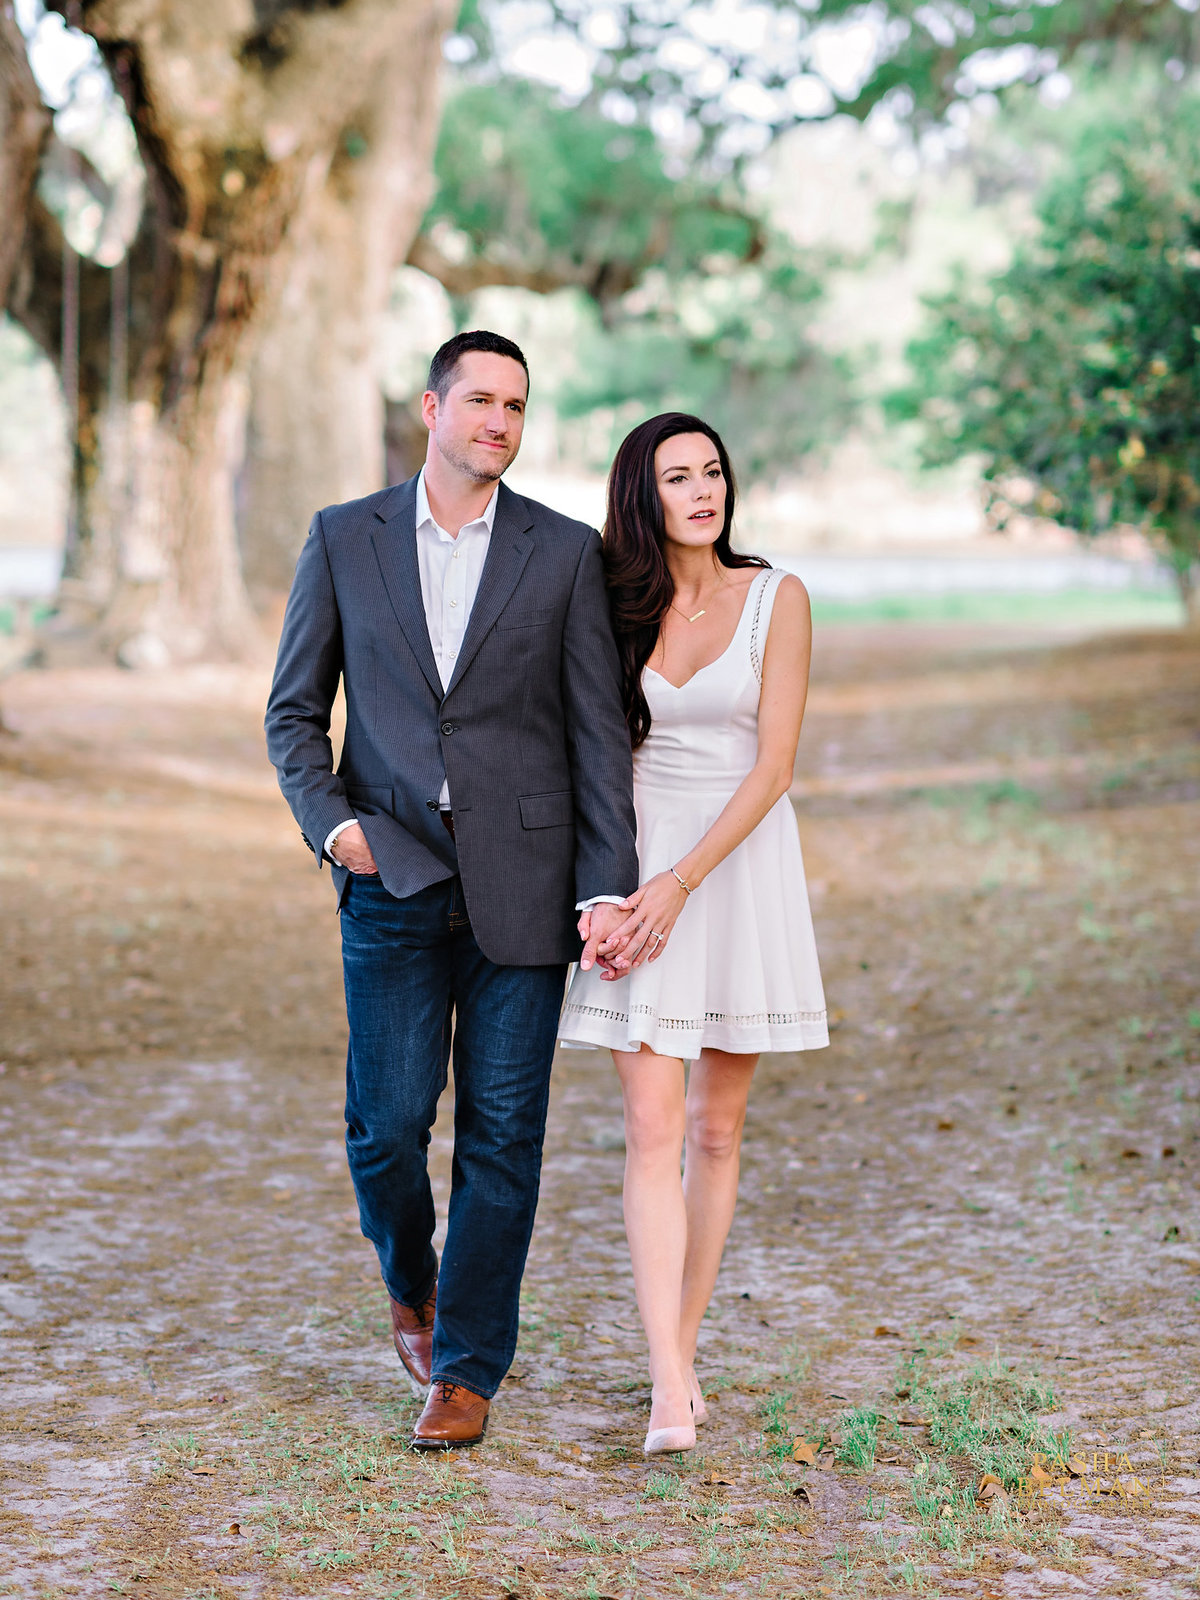 Charleston Engagement Photography | Engagement Pictures in Charleston | Engagement Portraits by Pasha Belman Photographer-11